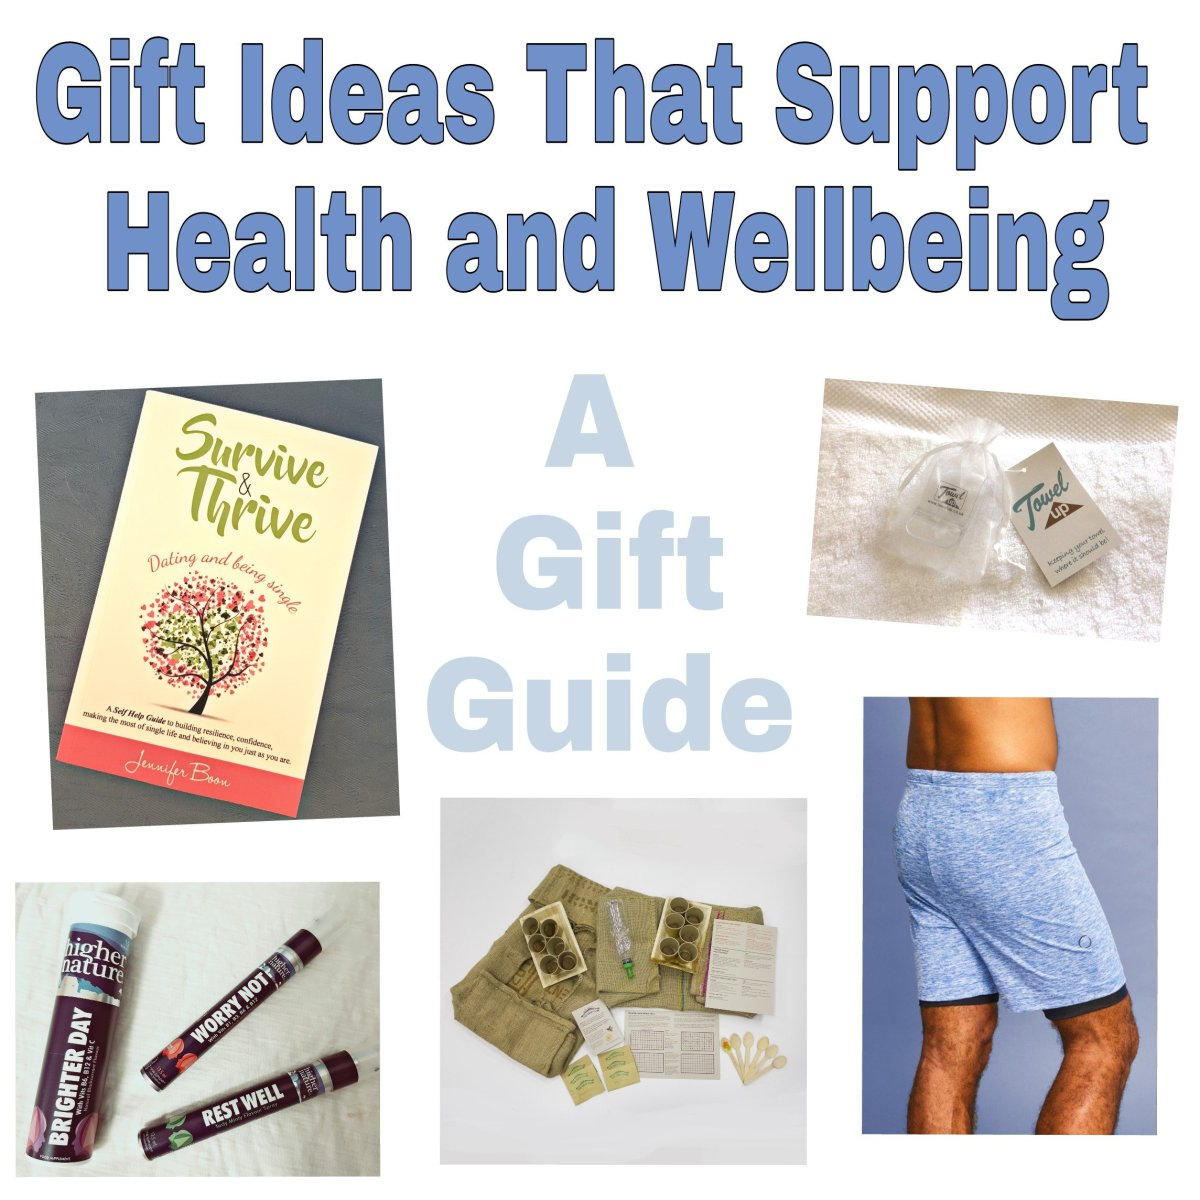 Great Gift Ideas For Health and Wellbeing (Gift Guide)